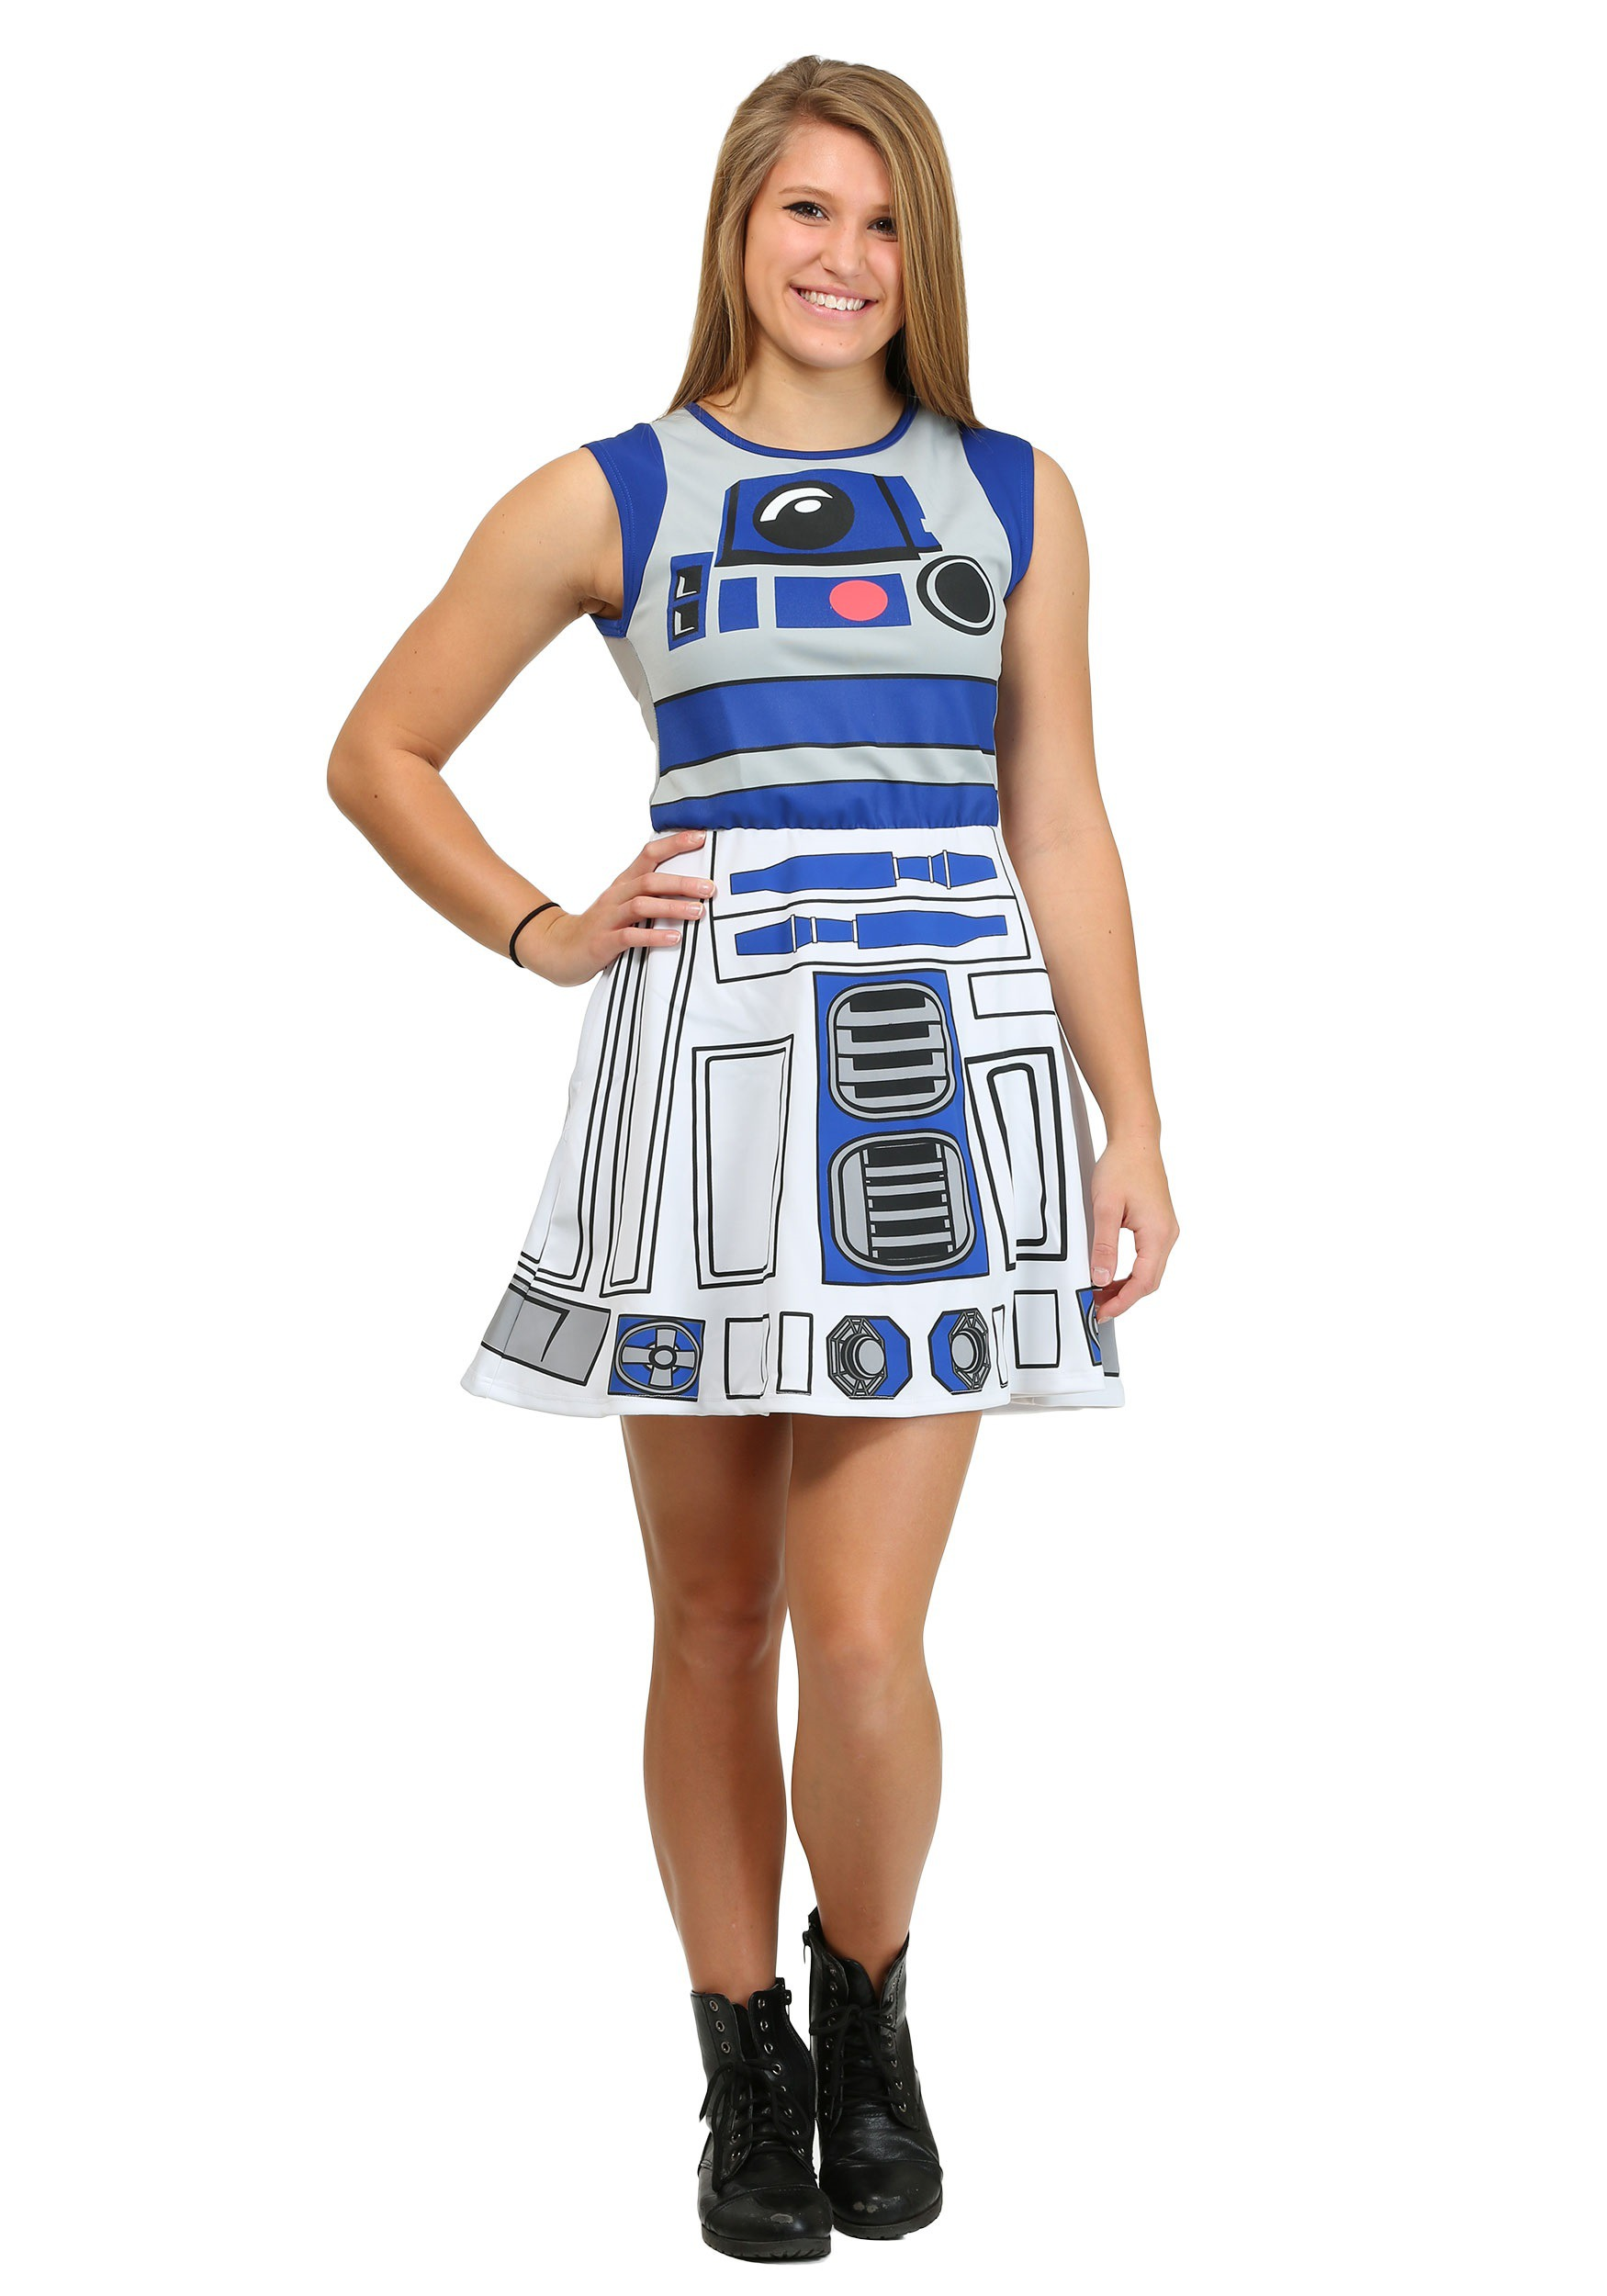 R2d2 costumes for kids adults halloweencostumes r2d2 mesh back skater dress solutioingenieria Image collections